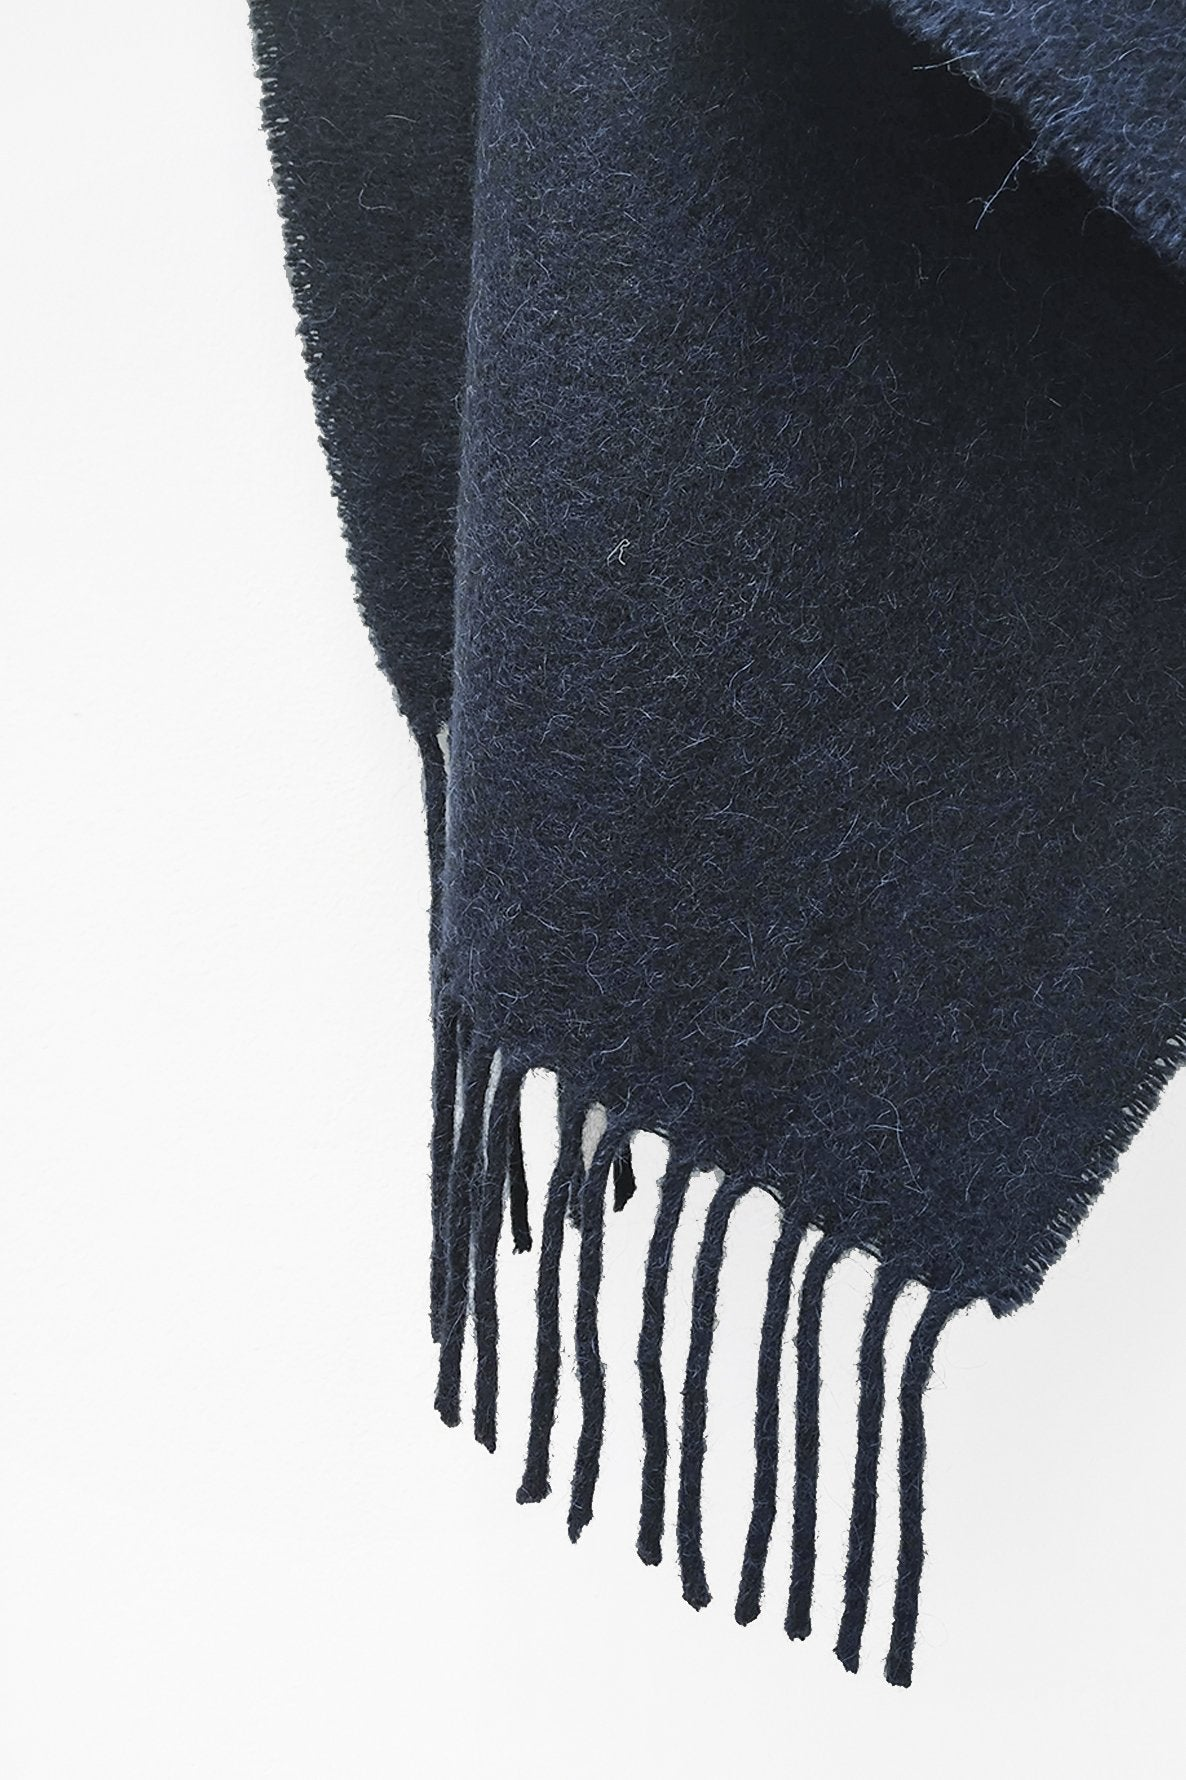 Close up of Fringe Ends of Navy Blue Llama and Sheep Wool XL Shawl.